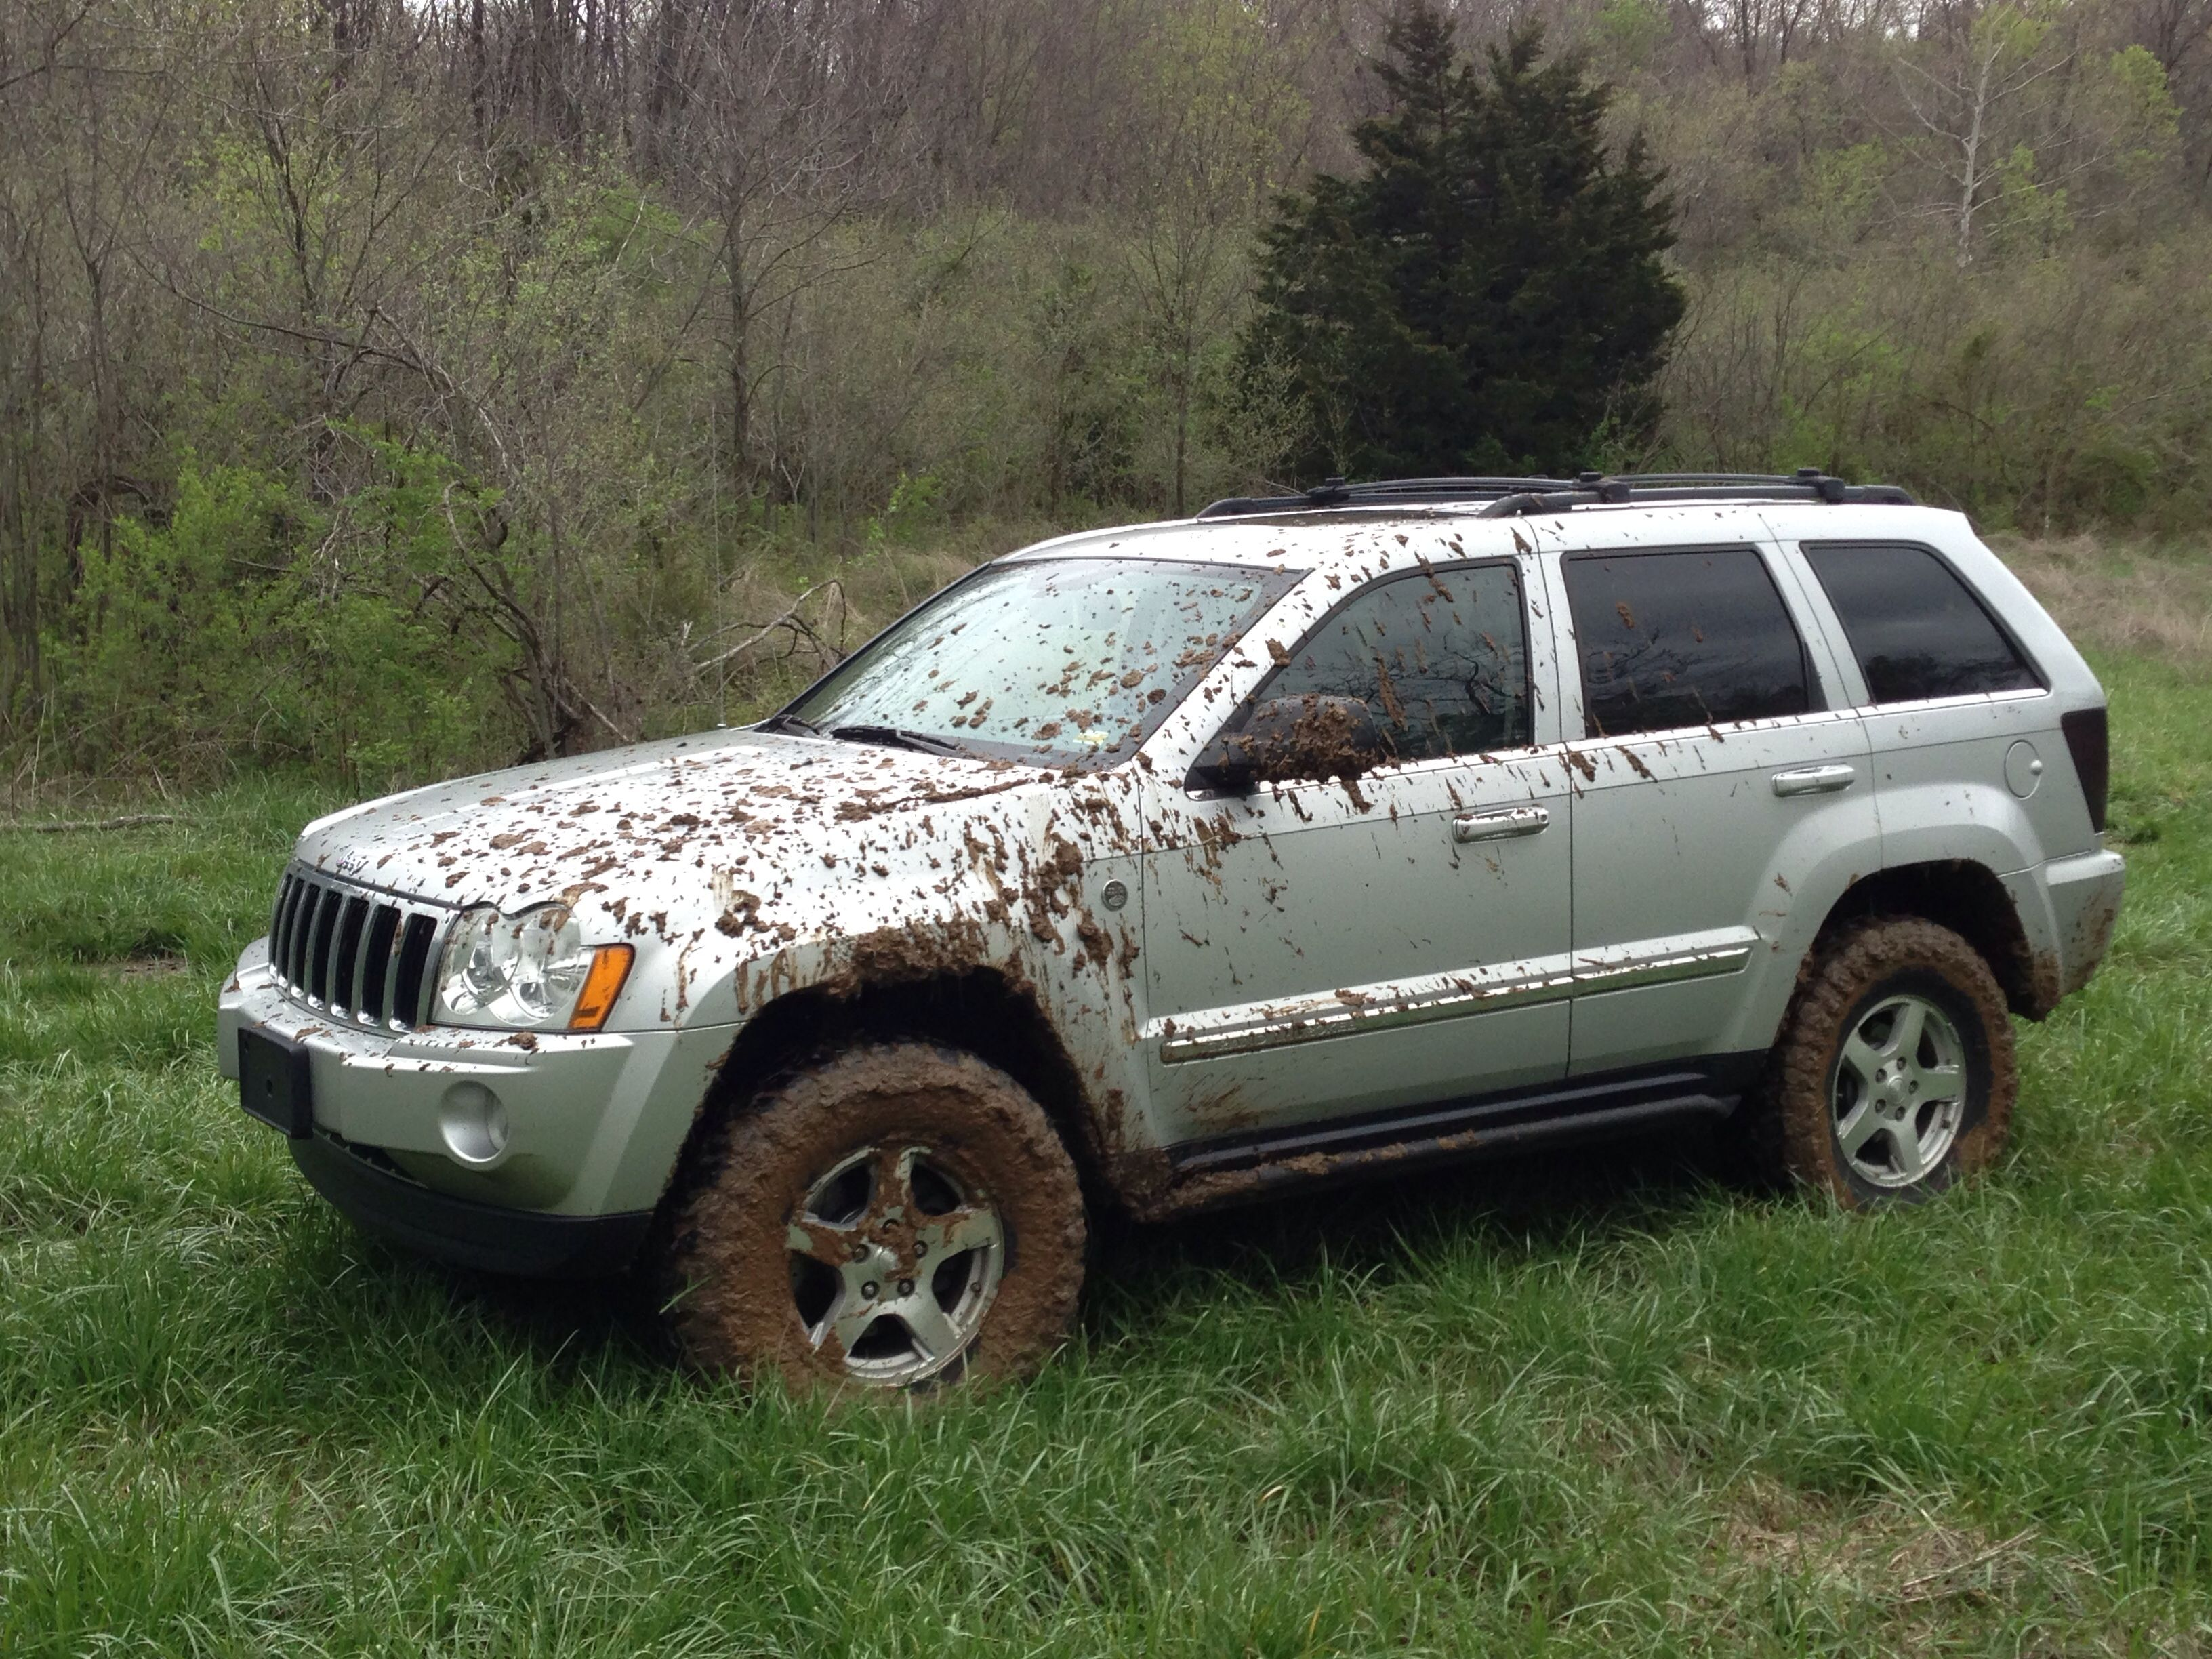 05 Hemi Grand Cherokee 2 inch lift 31x105 tires  4x4s